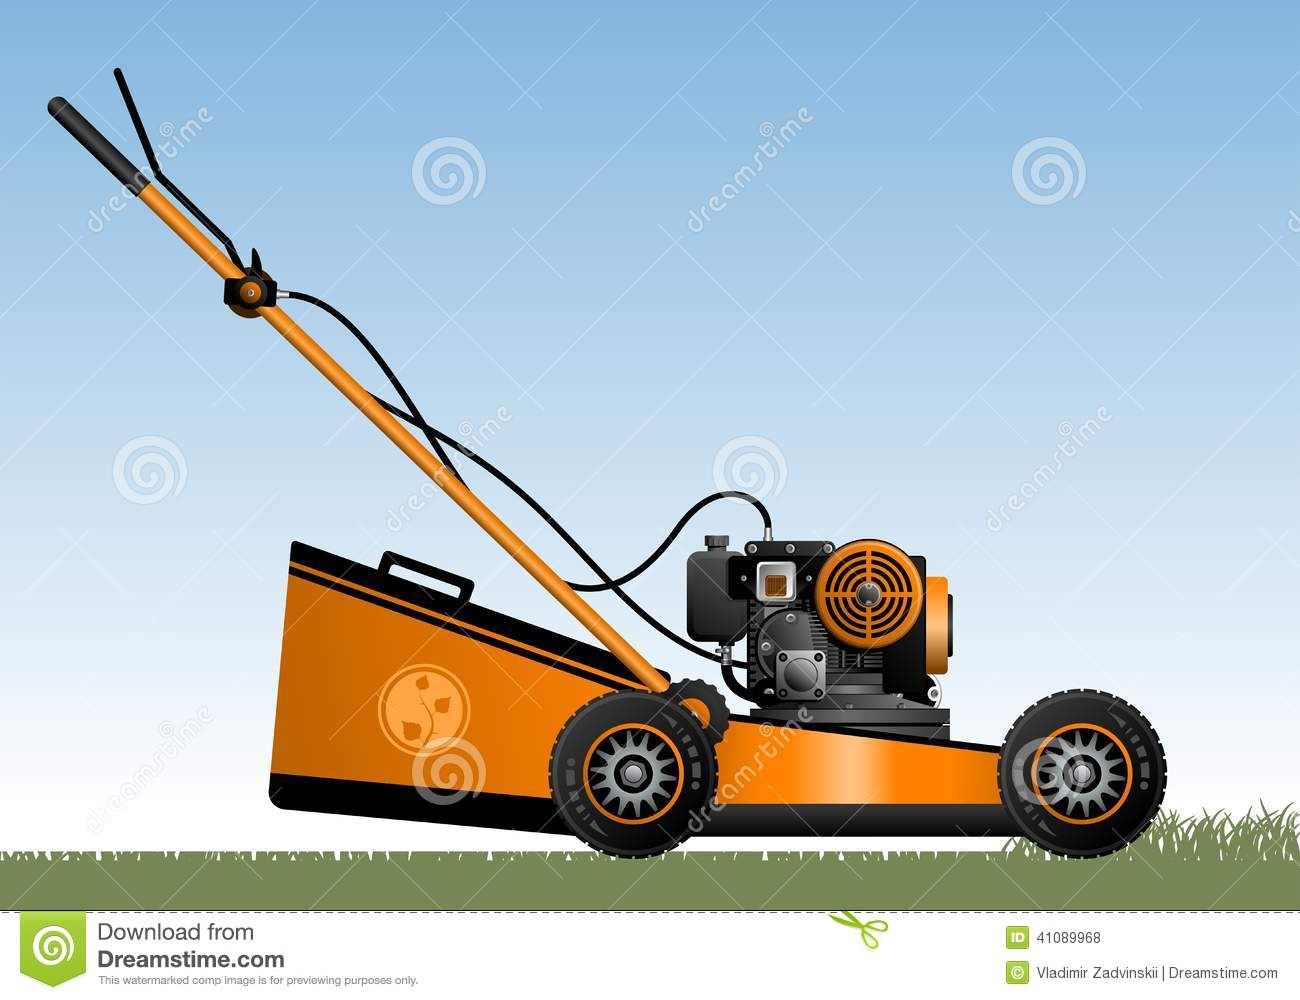 lawn mower vector - photo #41